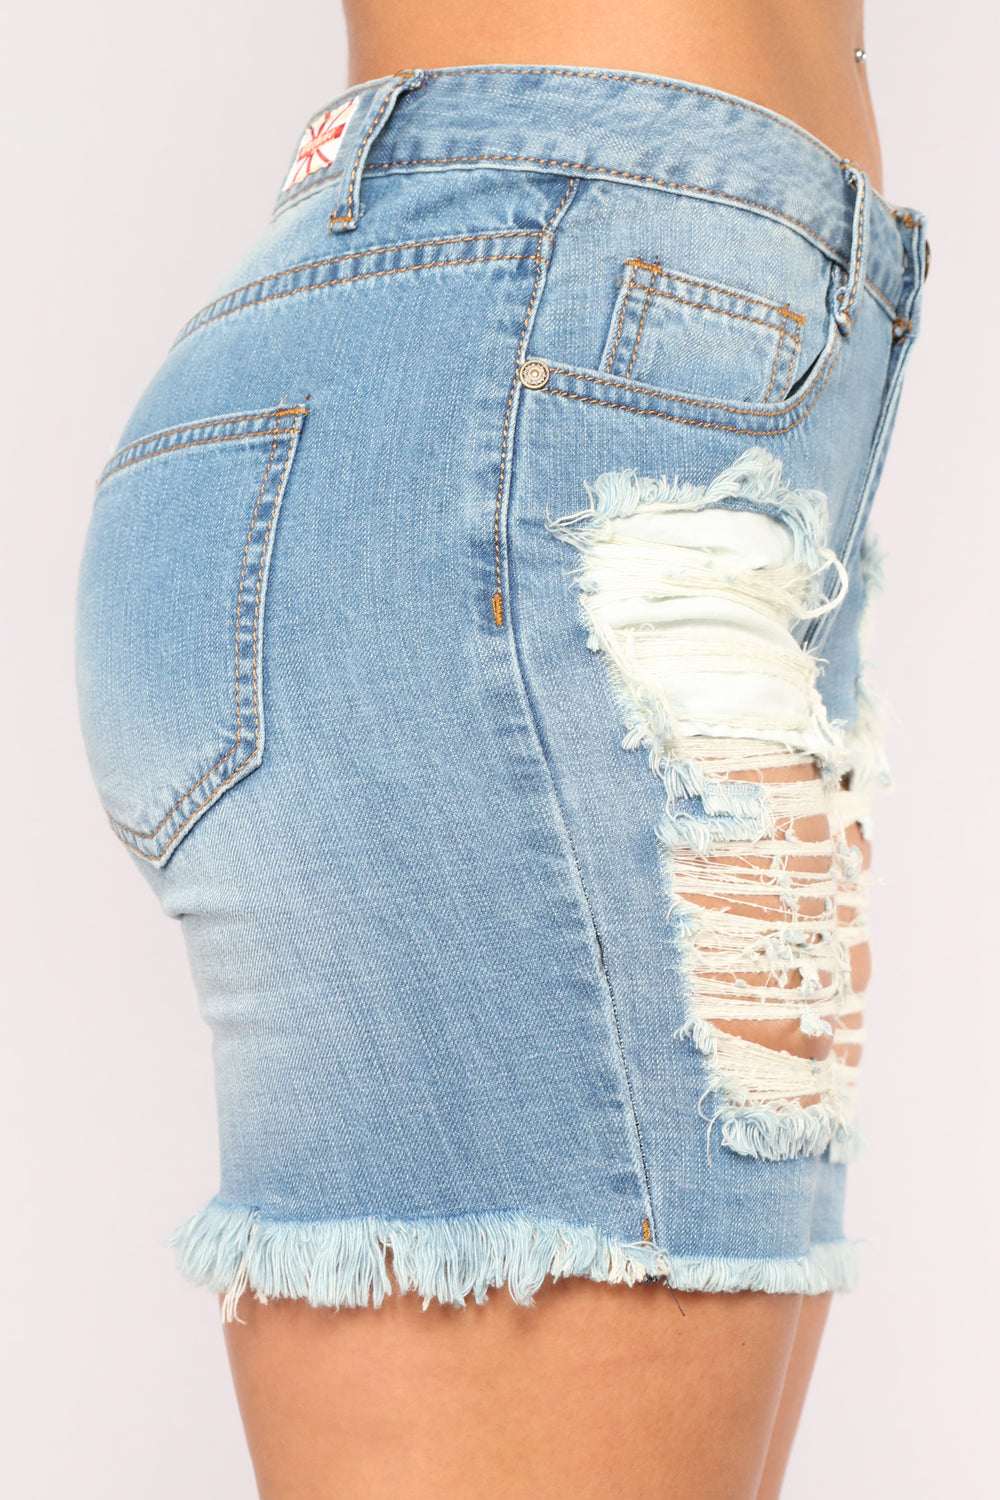 Paradise Lovers Bermudas - Medium Blue Wash